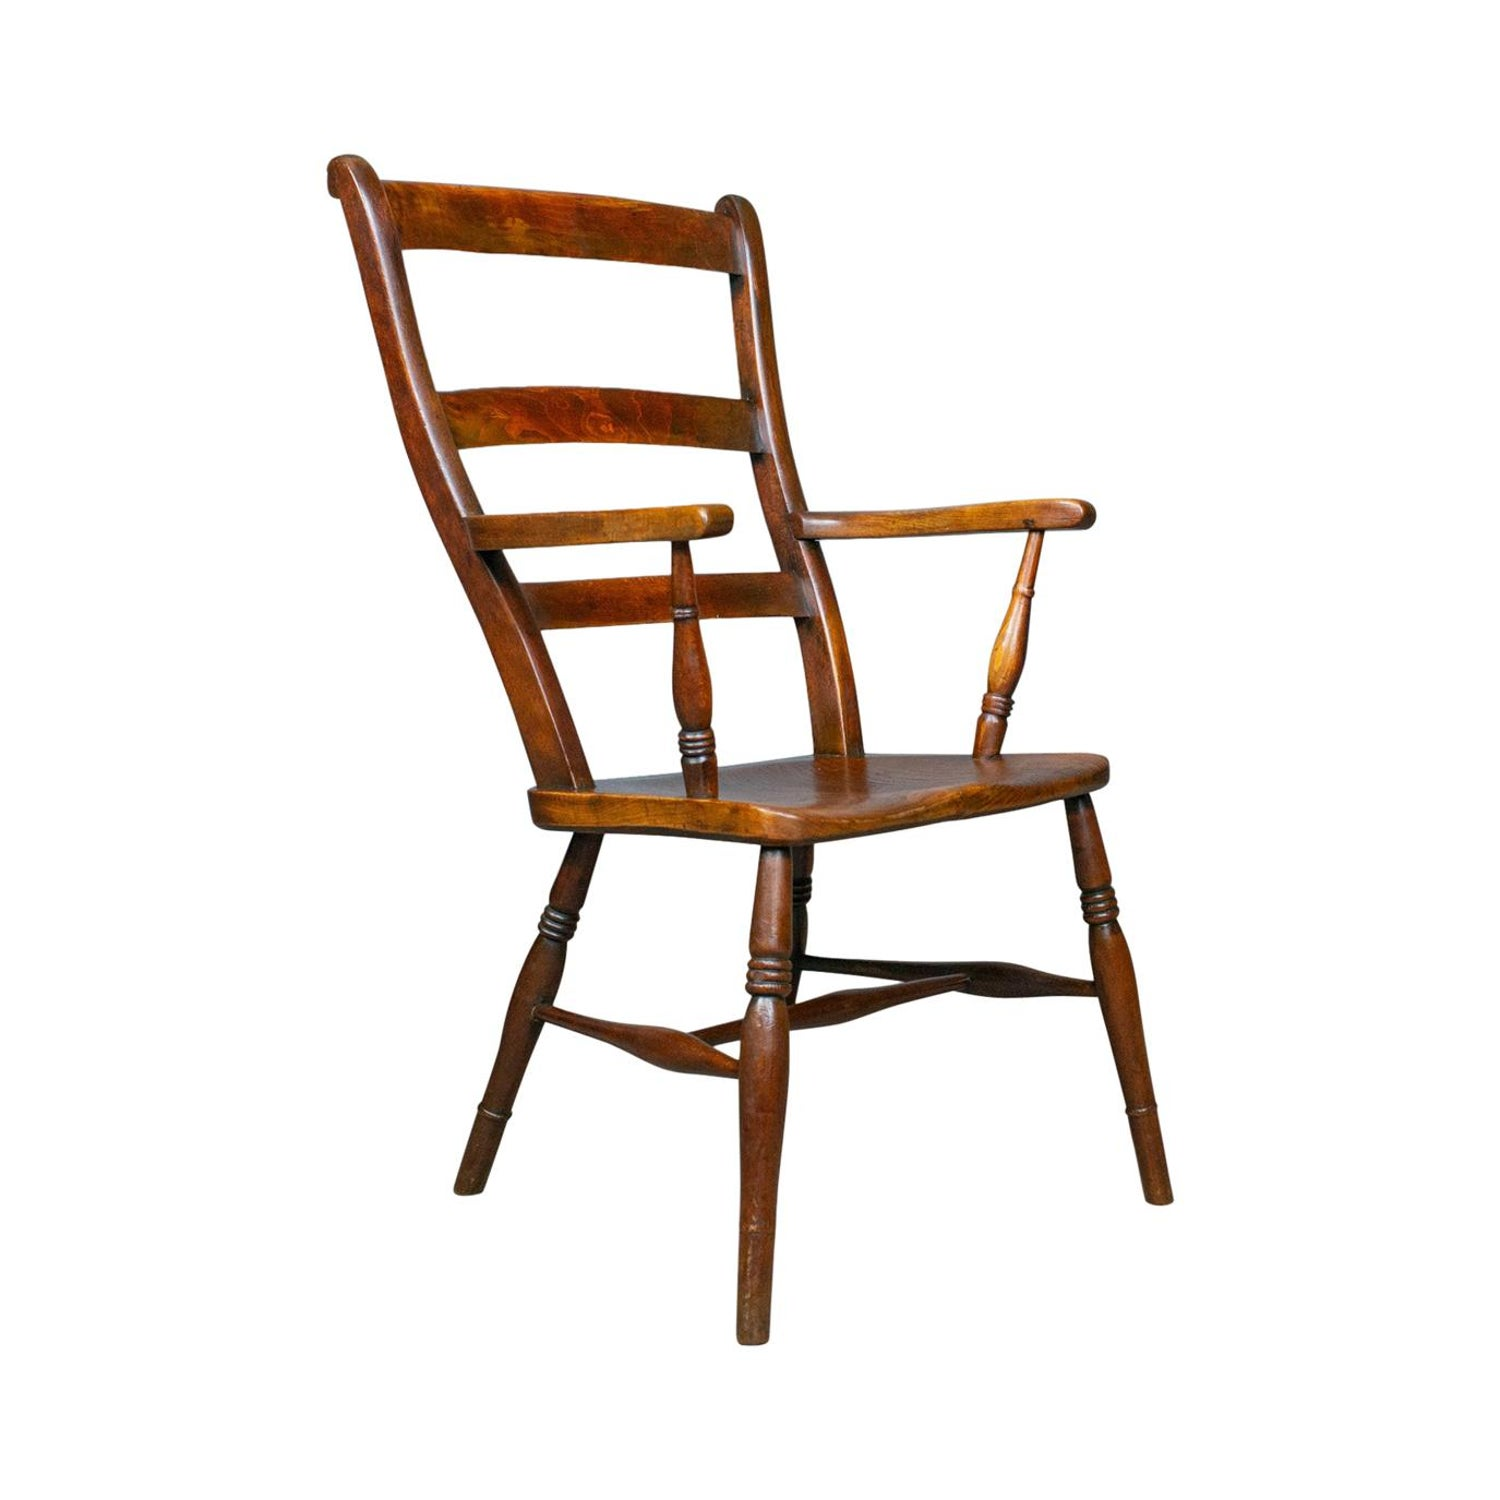 Antique oxford elbow chair victorian windsor lath back armchair elm for sale at 1stdibs